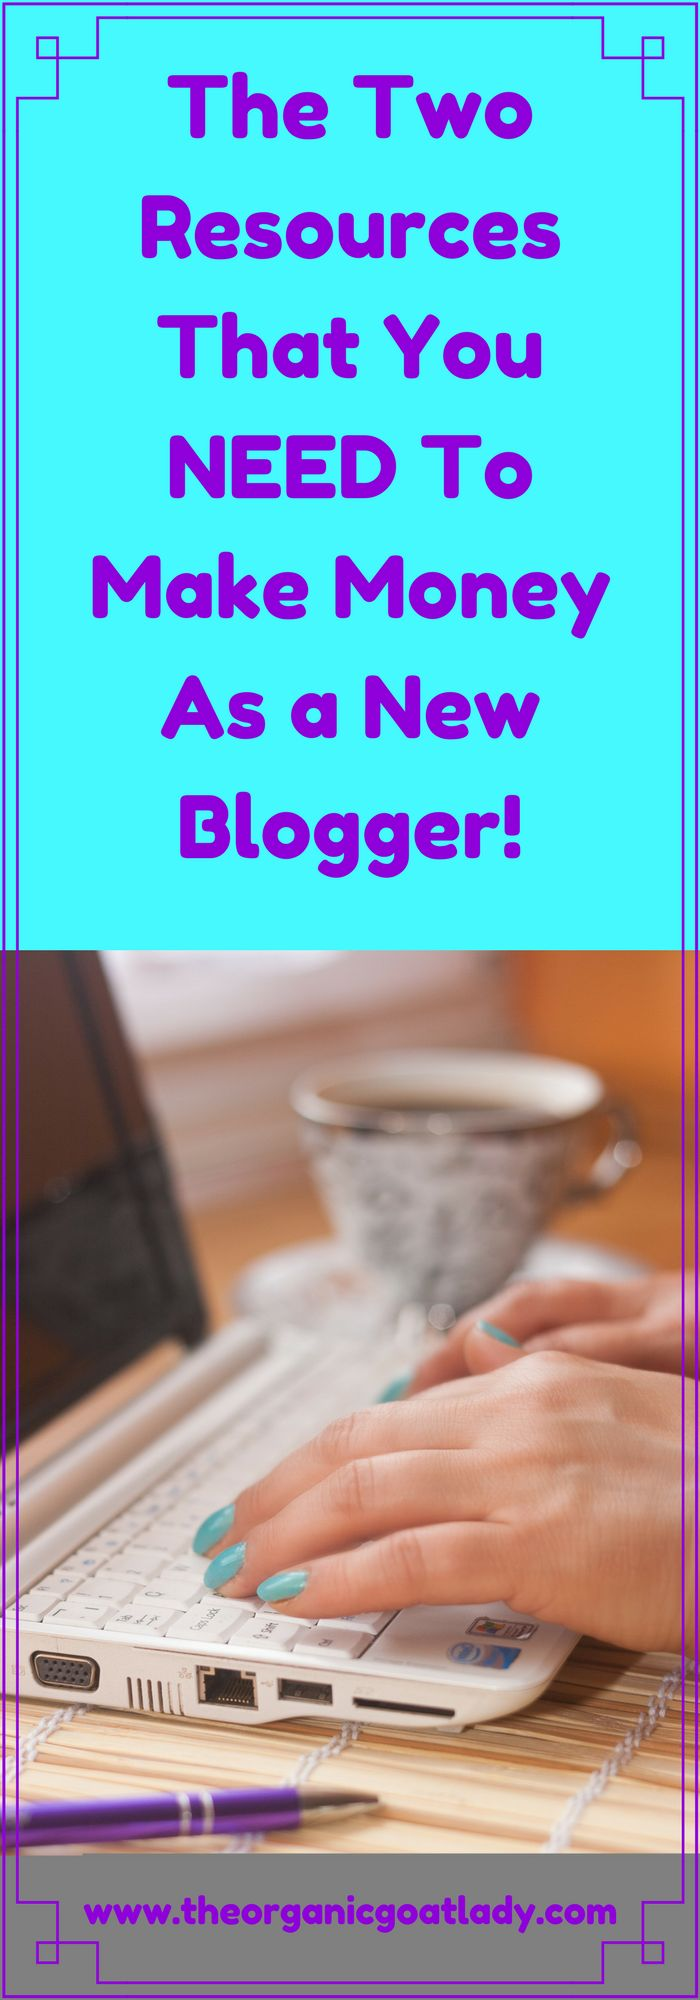 The Two Resources That You NEED To Make Money As a New Blogger!